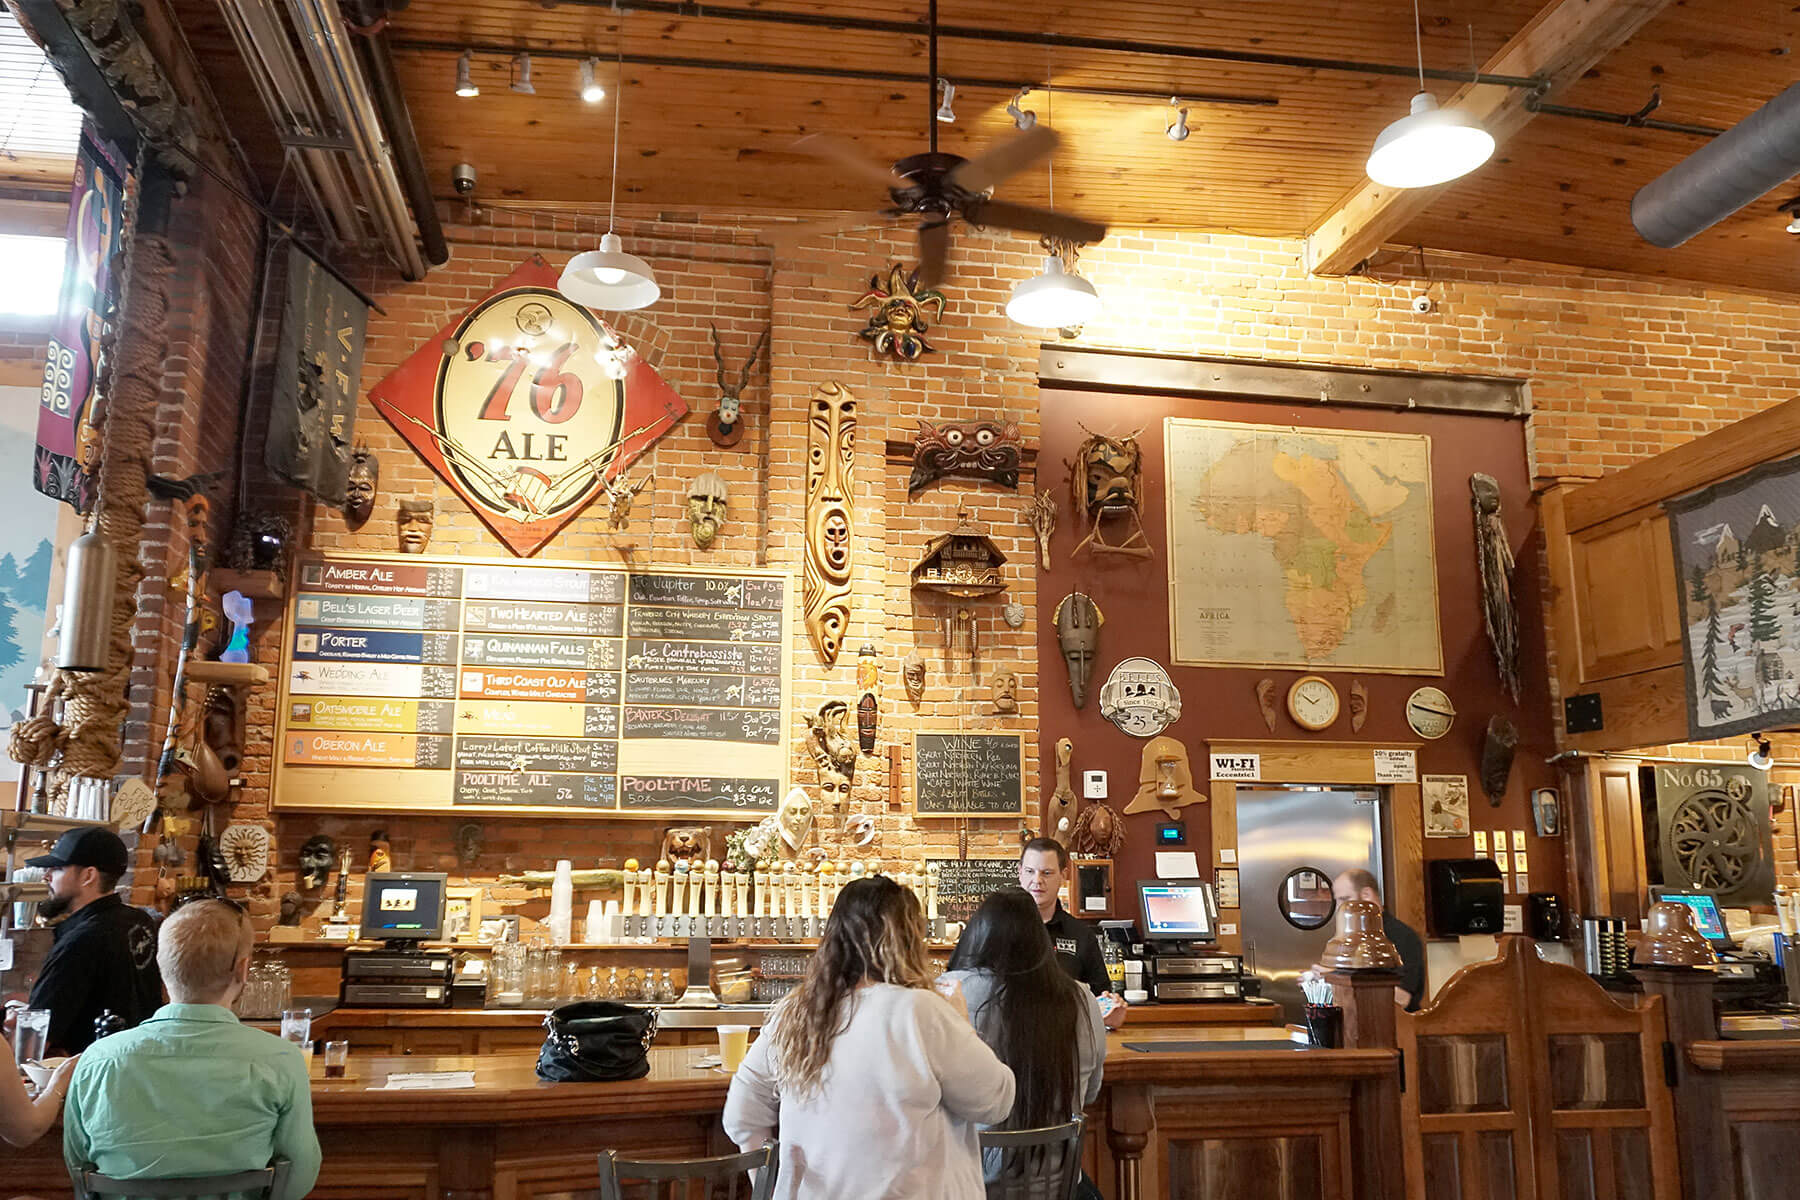 Bell's Brewery Inc. Eccentric Cafe Tap Room Interior in Kalamazoo, Michigan